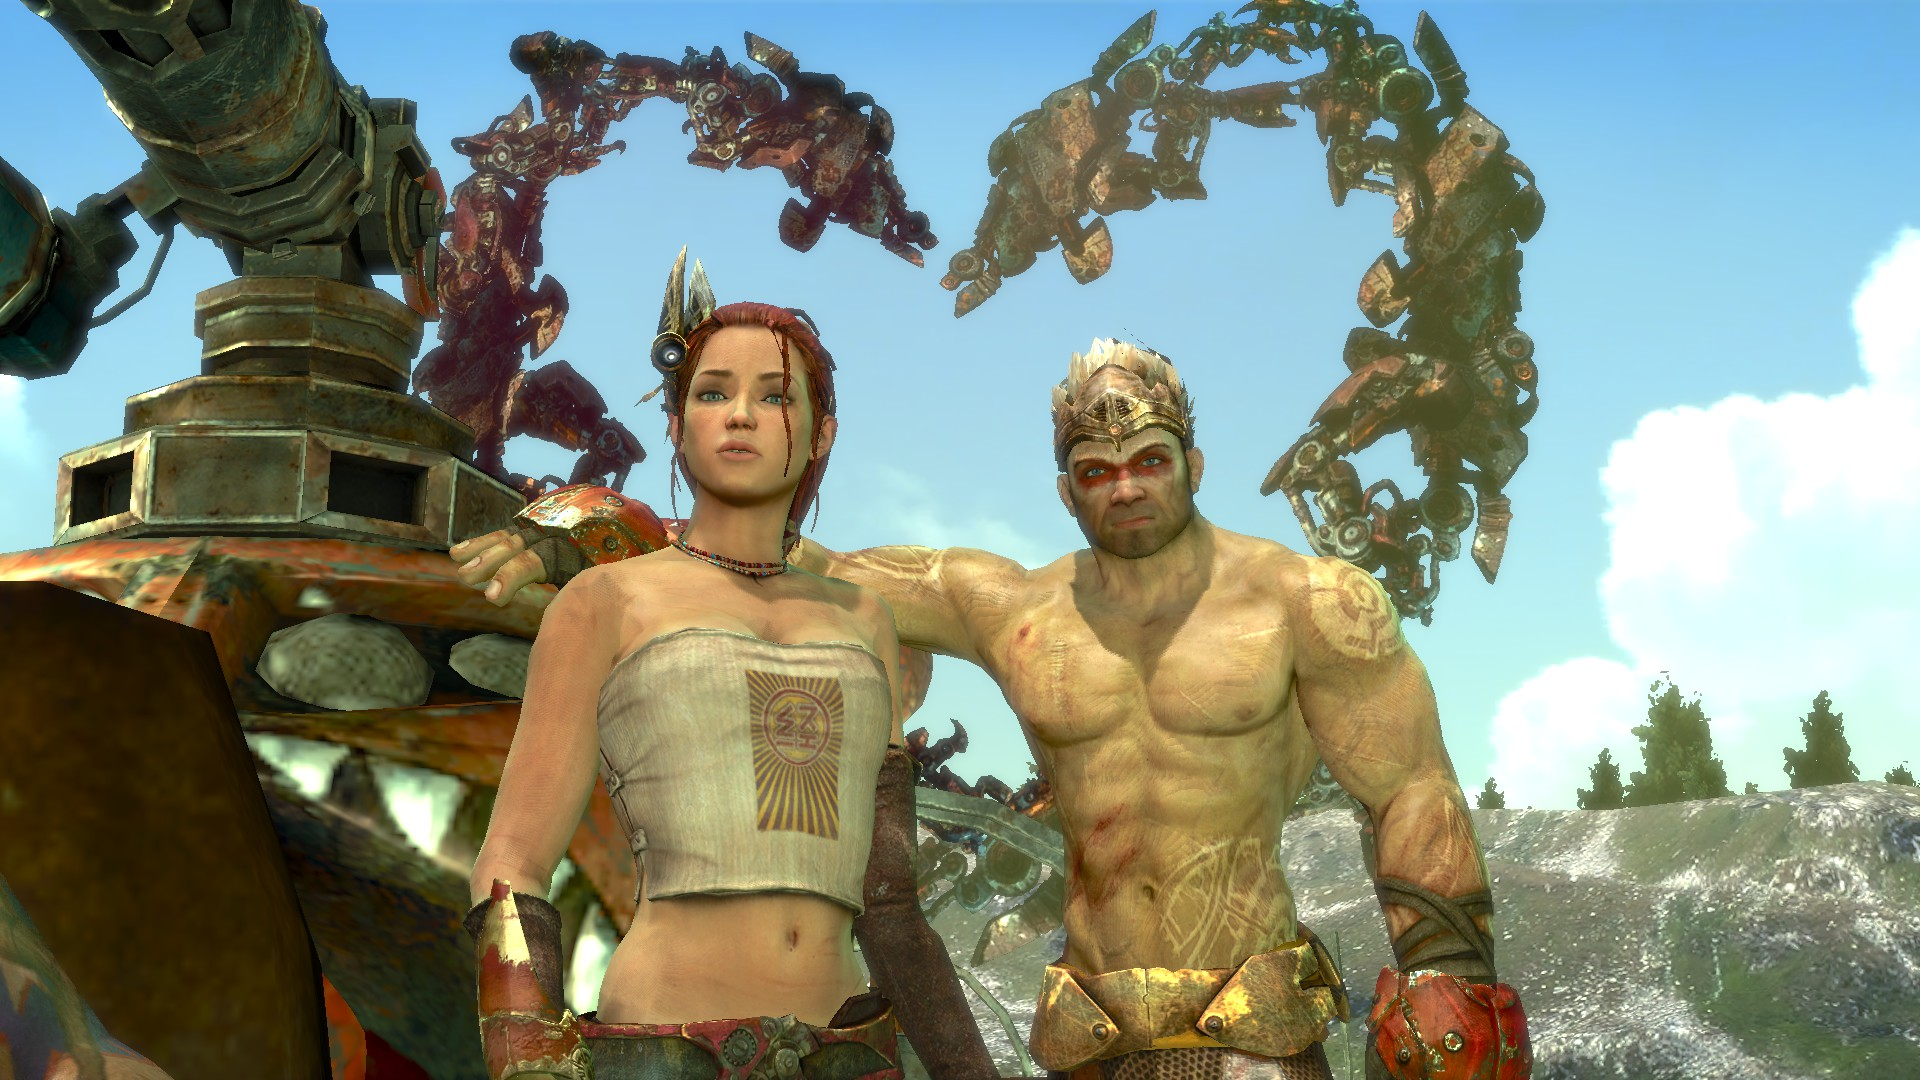 Enslaved Odyssey to the west monkey and trip